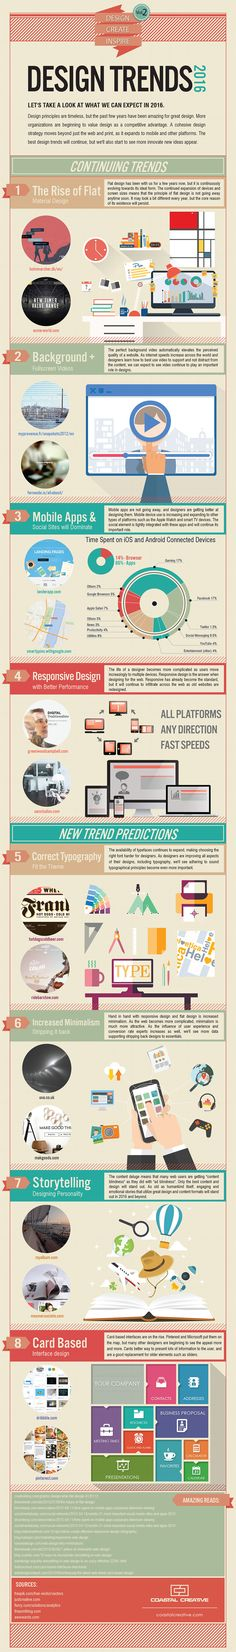 #Design Trends 2016 on Material Design, Fullscreen Videos, Mobile Apps & Social, Responsive Design re. Perfromance, Typography re. Theme, Minimalism, Interface – #Infographic #Creation #Inspiration